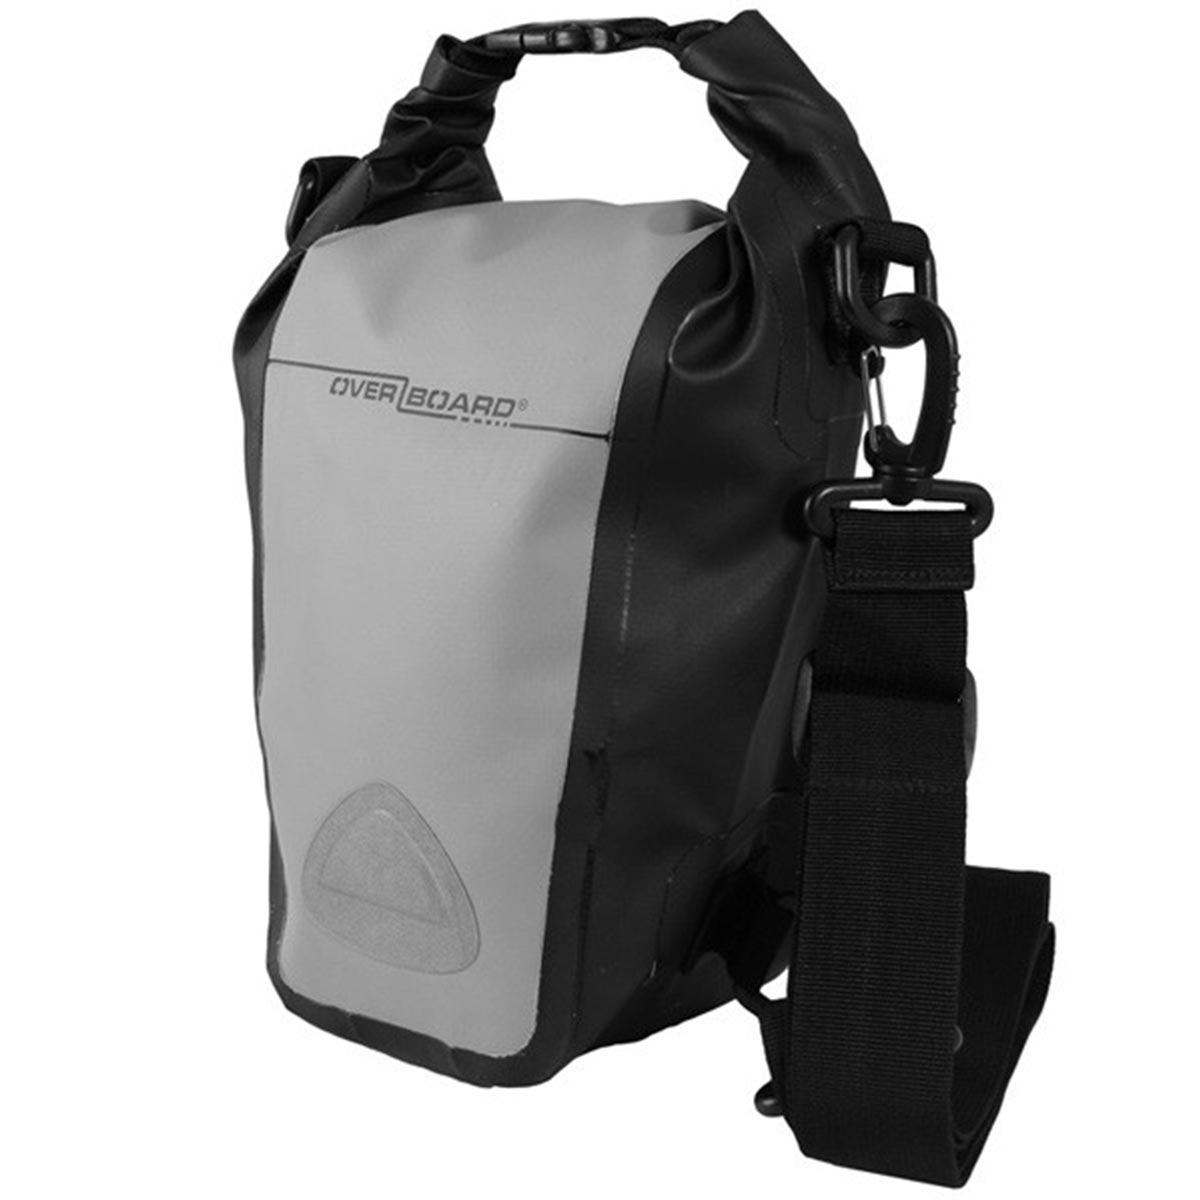 SLR Camera Bag BLK 7 Litre